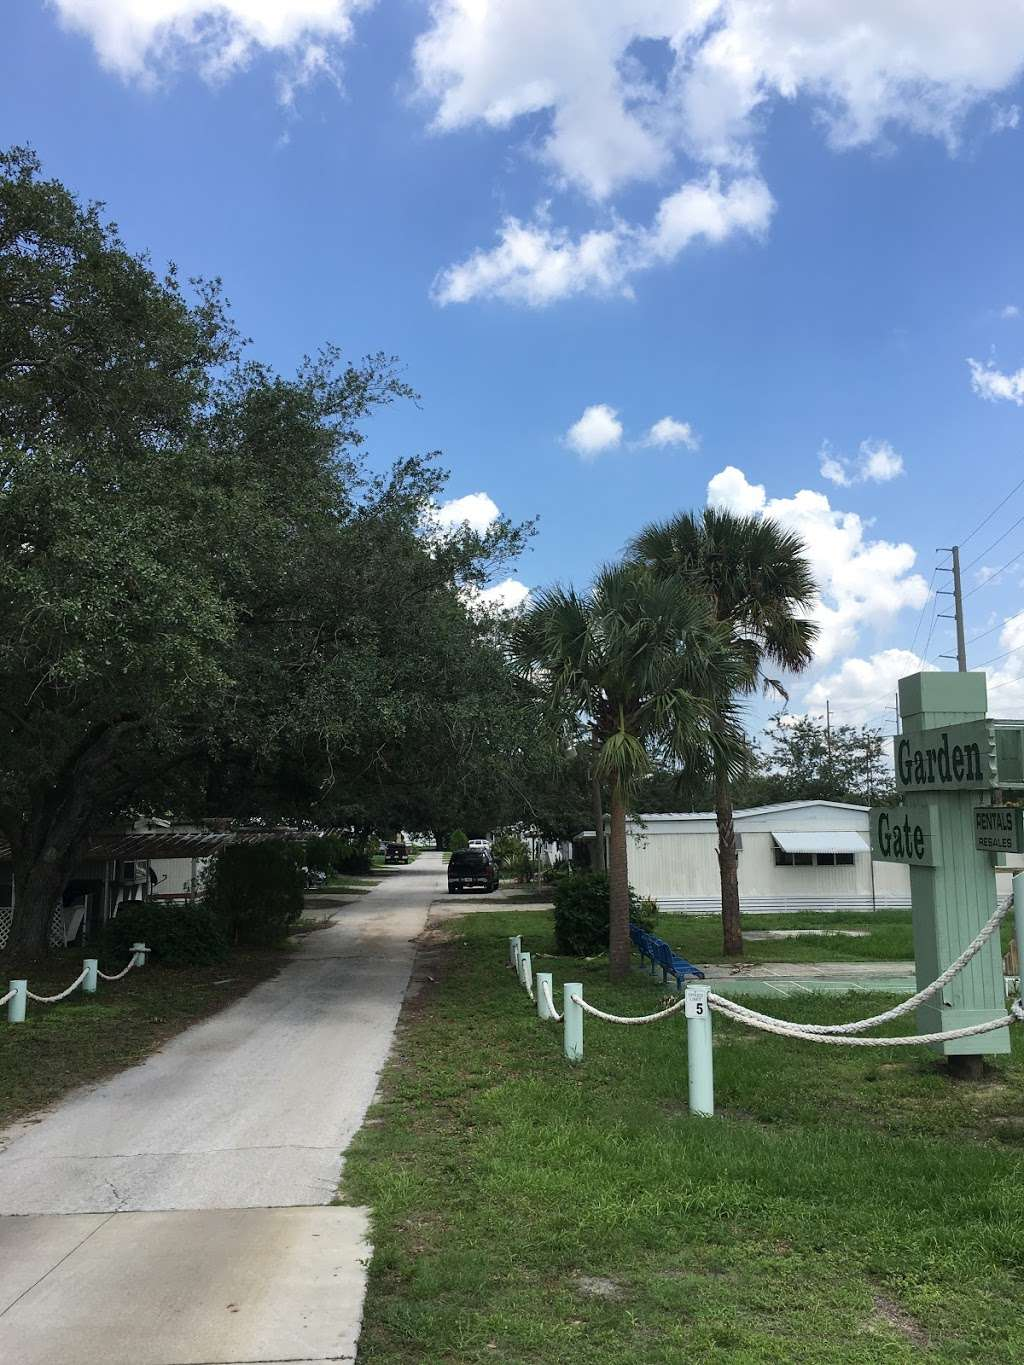 Garden Gate Mobile Home Park - rv park  | Photo 1 of 1 | Address: 27881 US HIGHWAY 27 S, Dundee, FL 33838, USA | Phone: (863) 588-0858